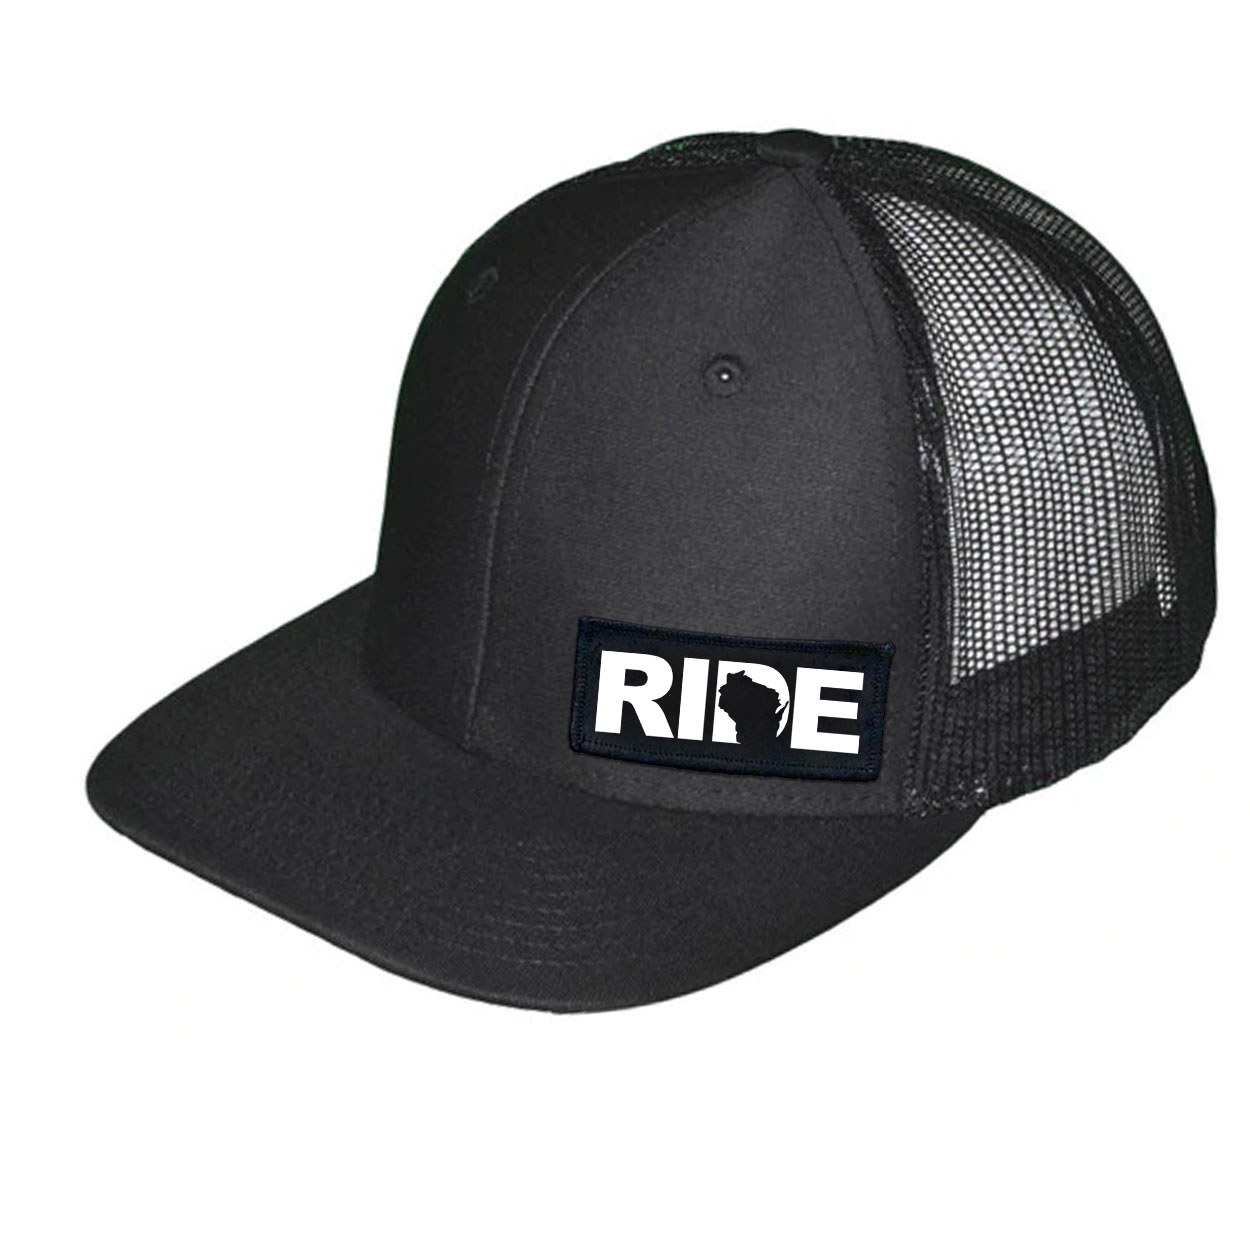 Ride Wisconsin Night Out Woven Patch Snapback Trucker Hat Black (White Logo)